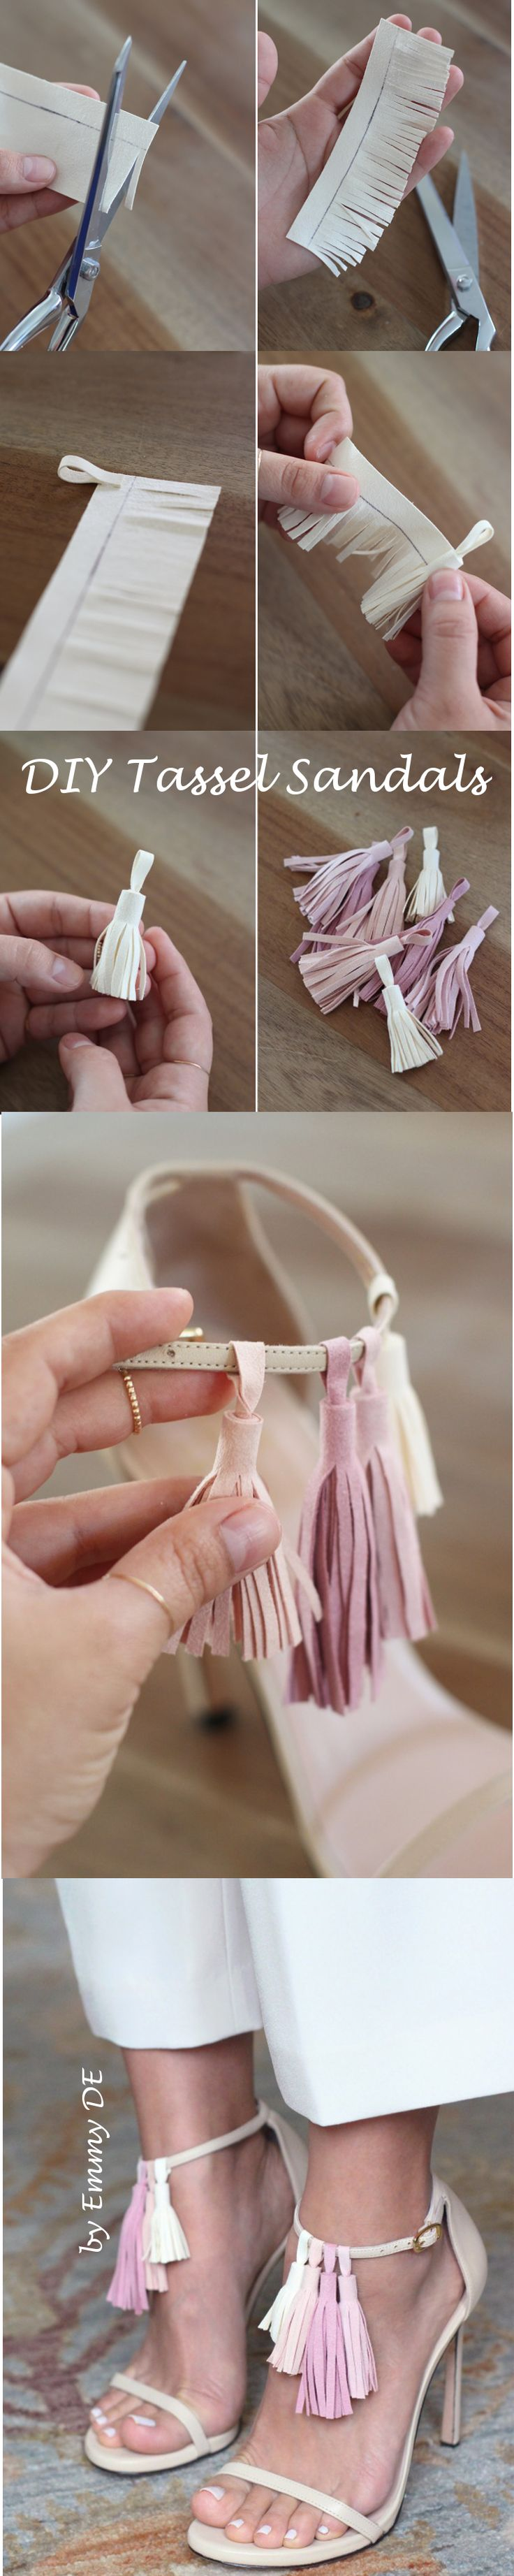 Emmy DE * DIY Tassel Sandals ~ You'll need: strappy sandals (here Stewart Weitzman Nudist ), 8 pieces of 5×5 ultra suede fabric (2 of each color), fabric glue, fabric shears, ruler, pen (images by HonestlyWTF)